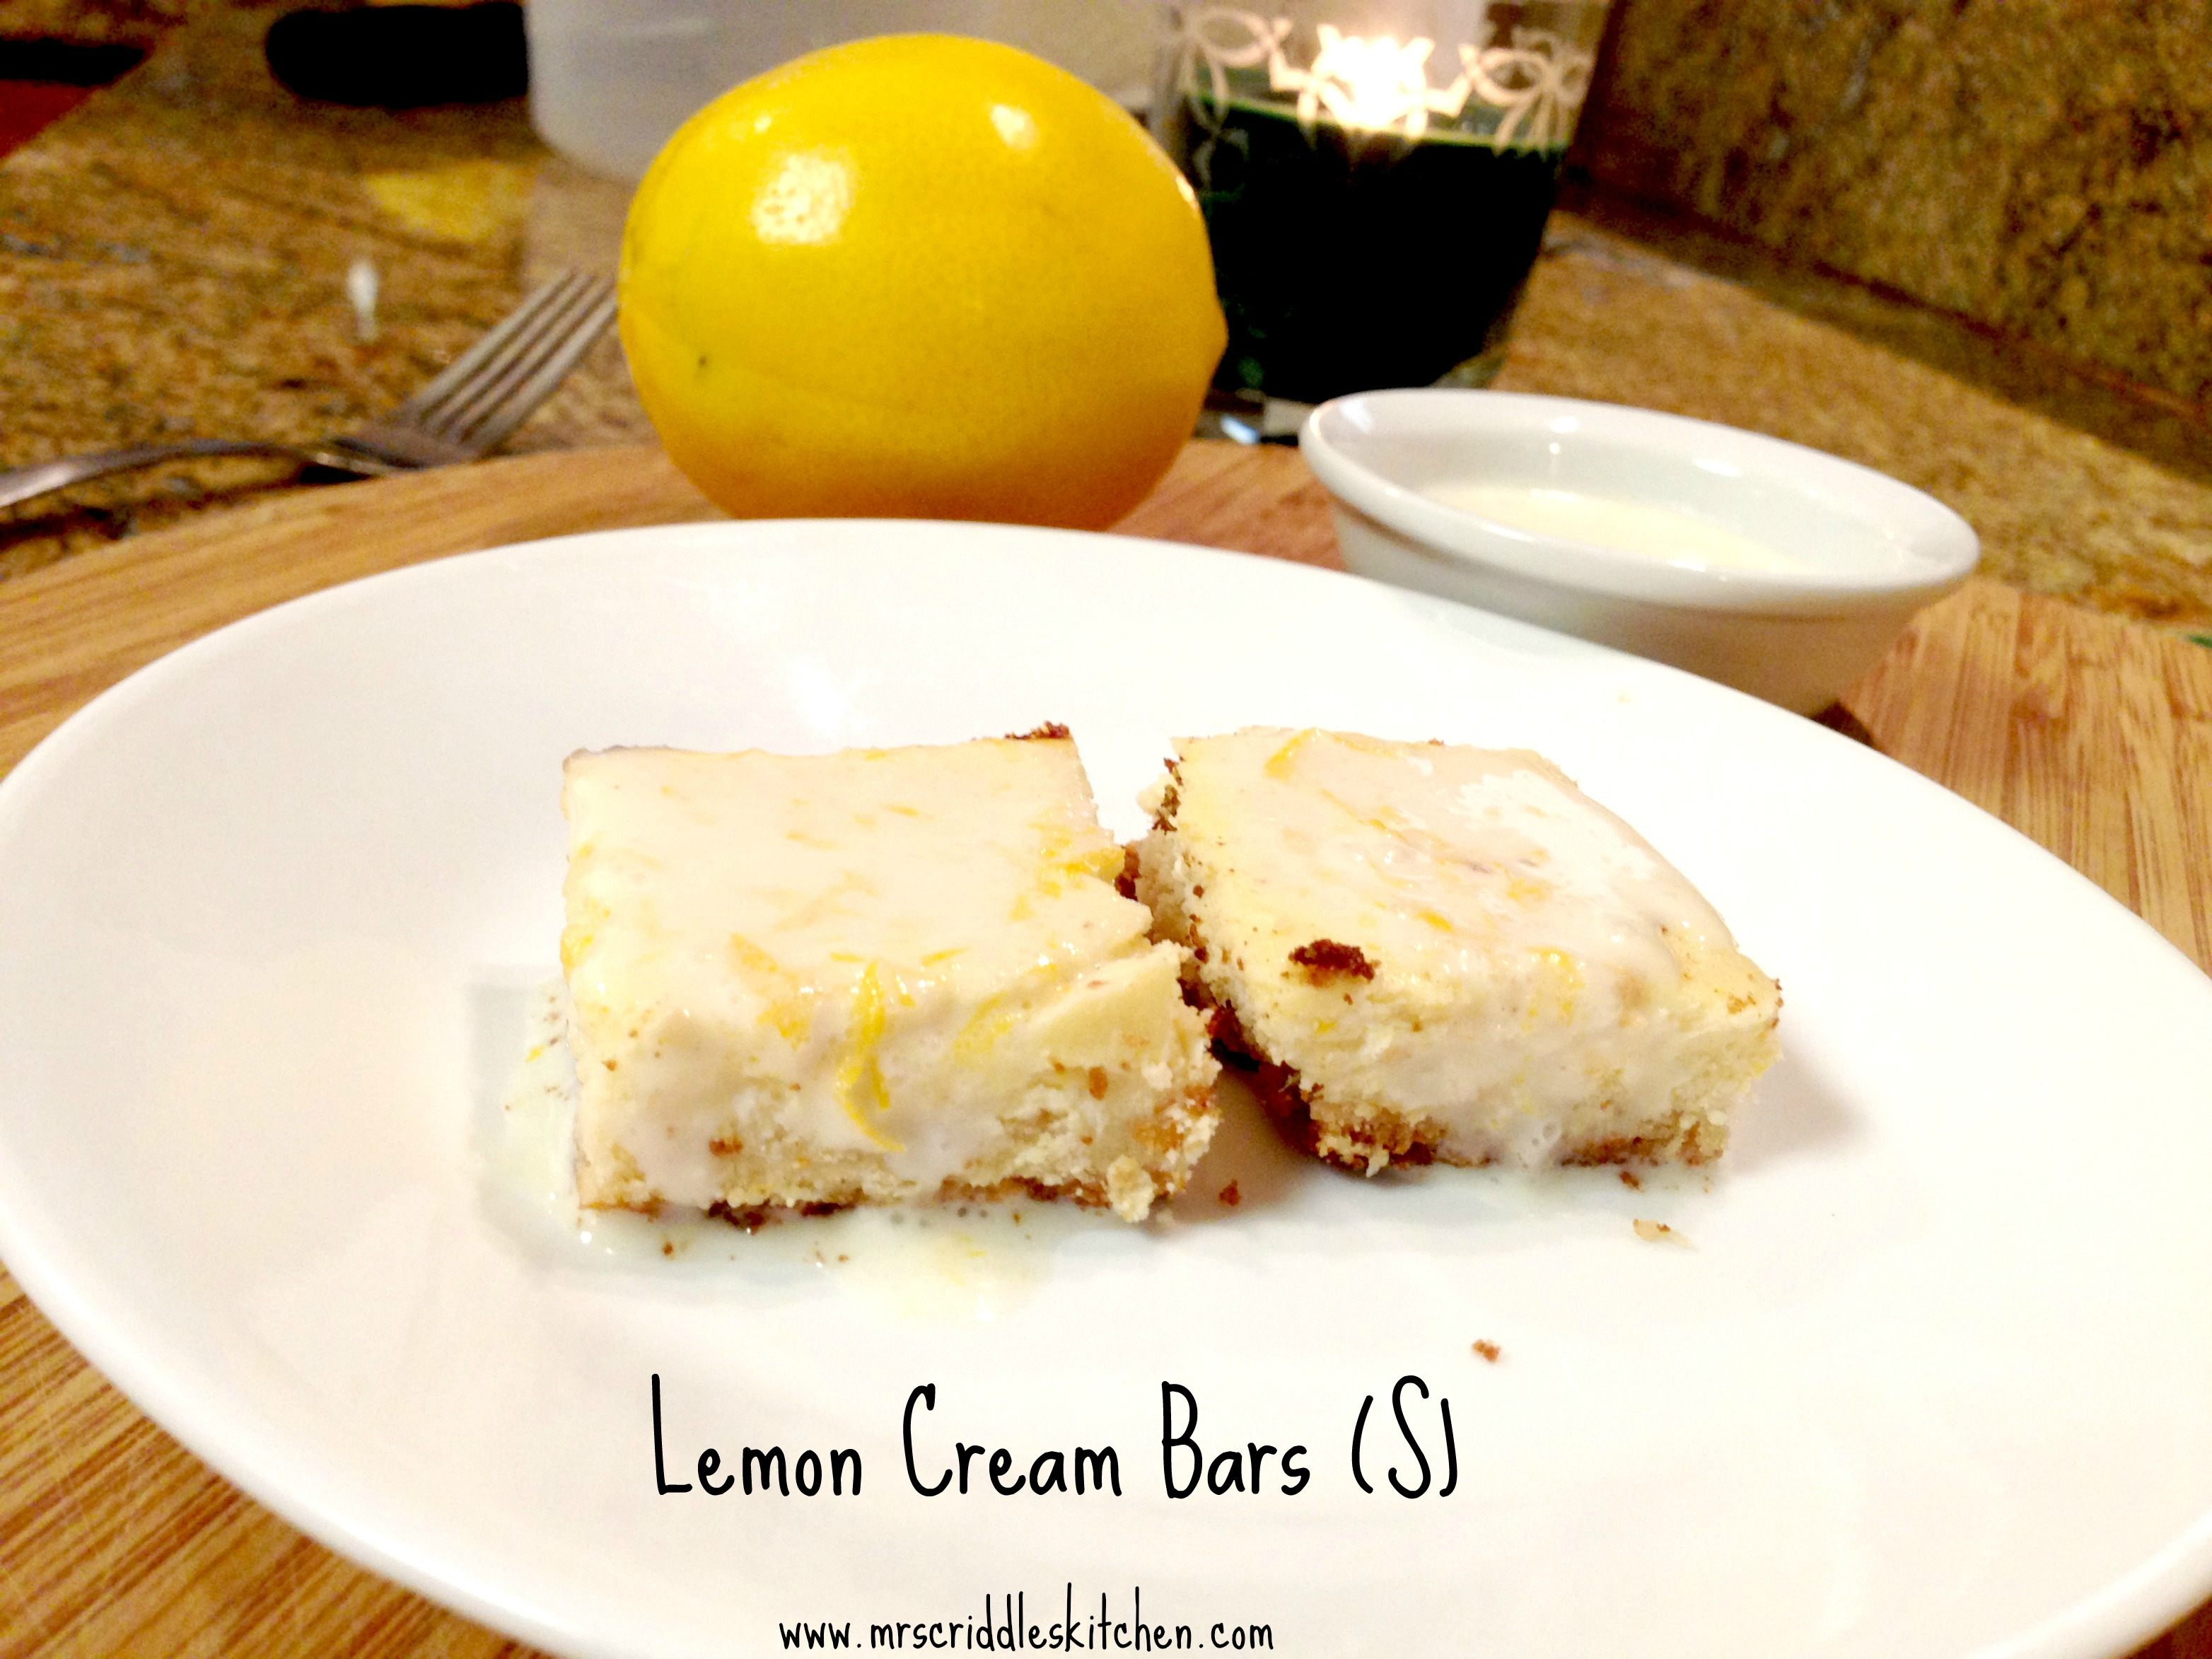 Lemon Cream Bars (S)